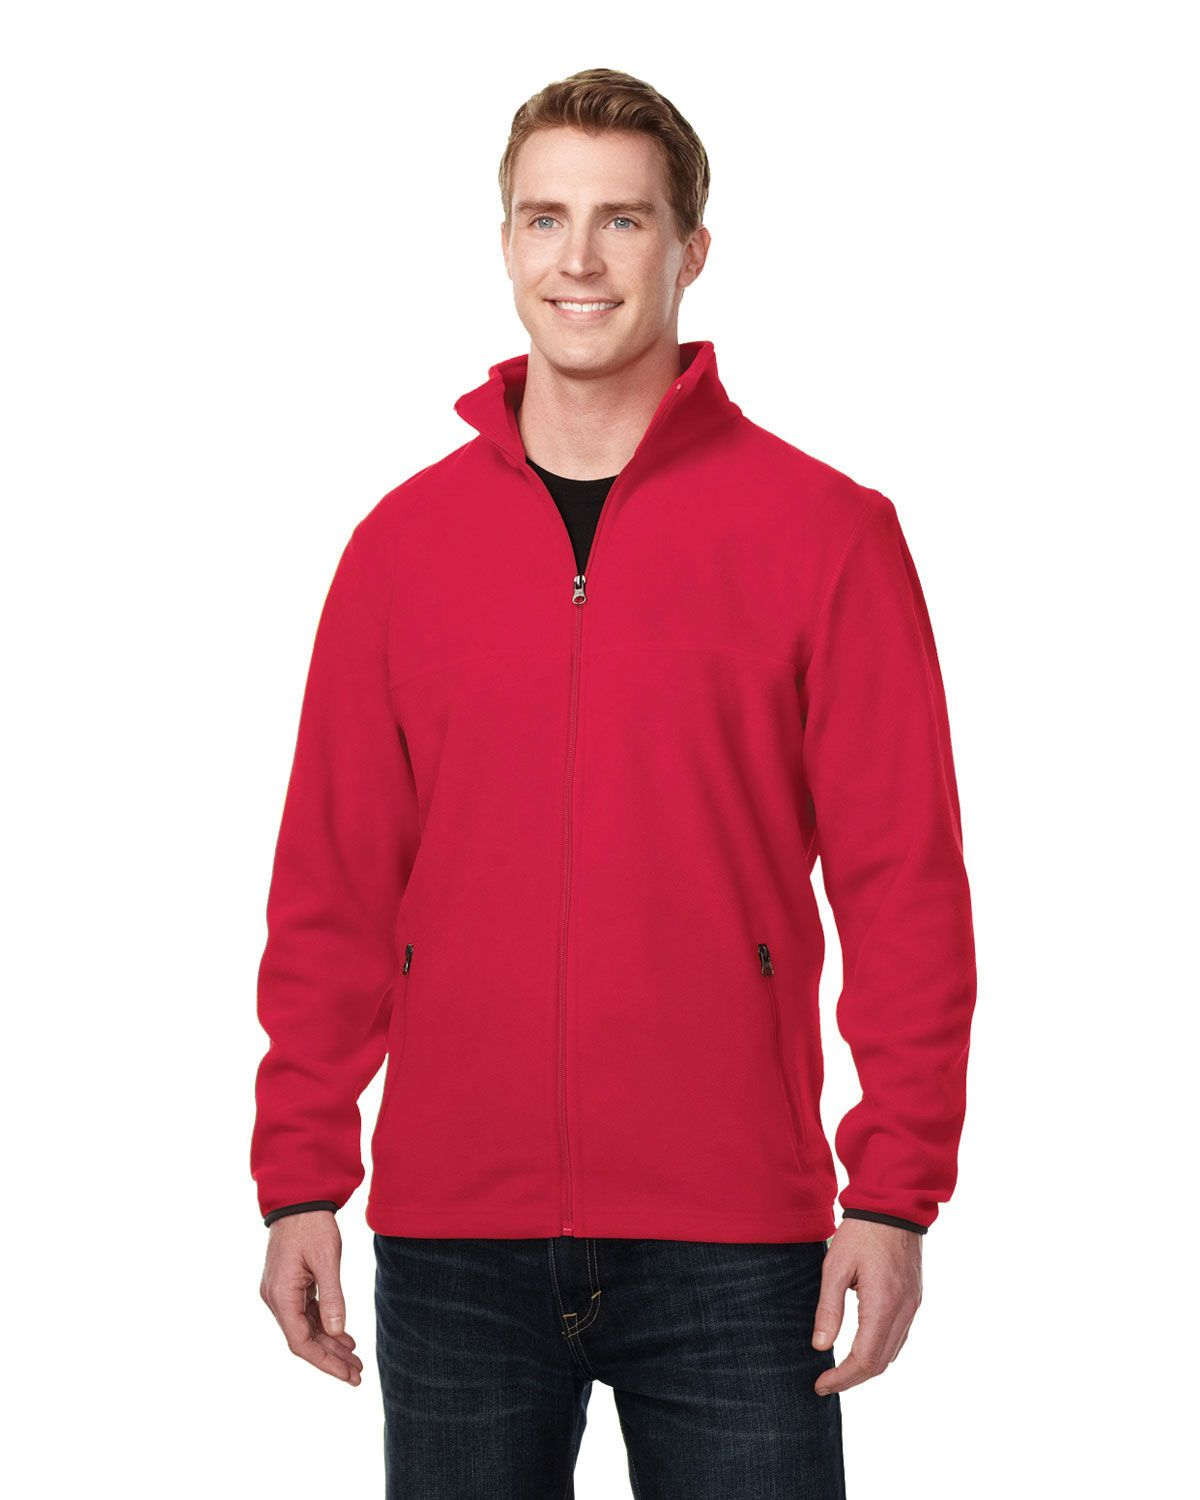 Mens polar slash zippered fleece jacket with pockets. Tri mountain F7608 #bachlor #greatoffer #comfortable